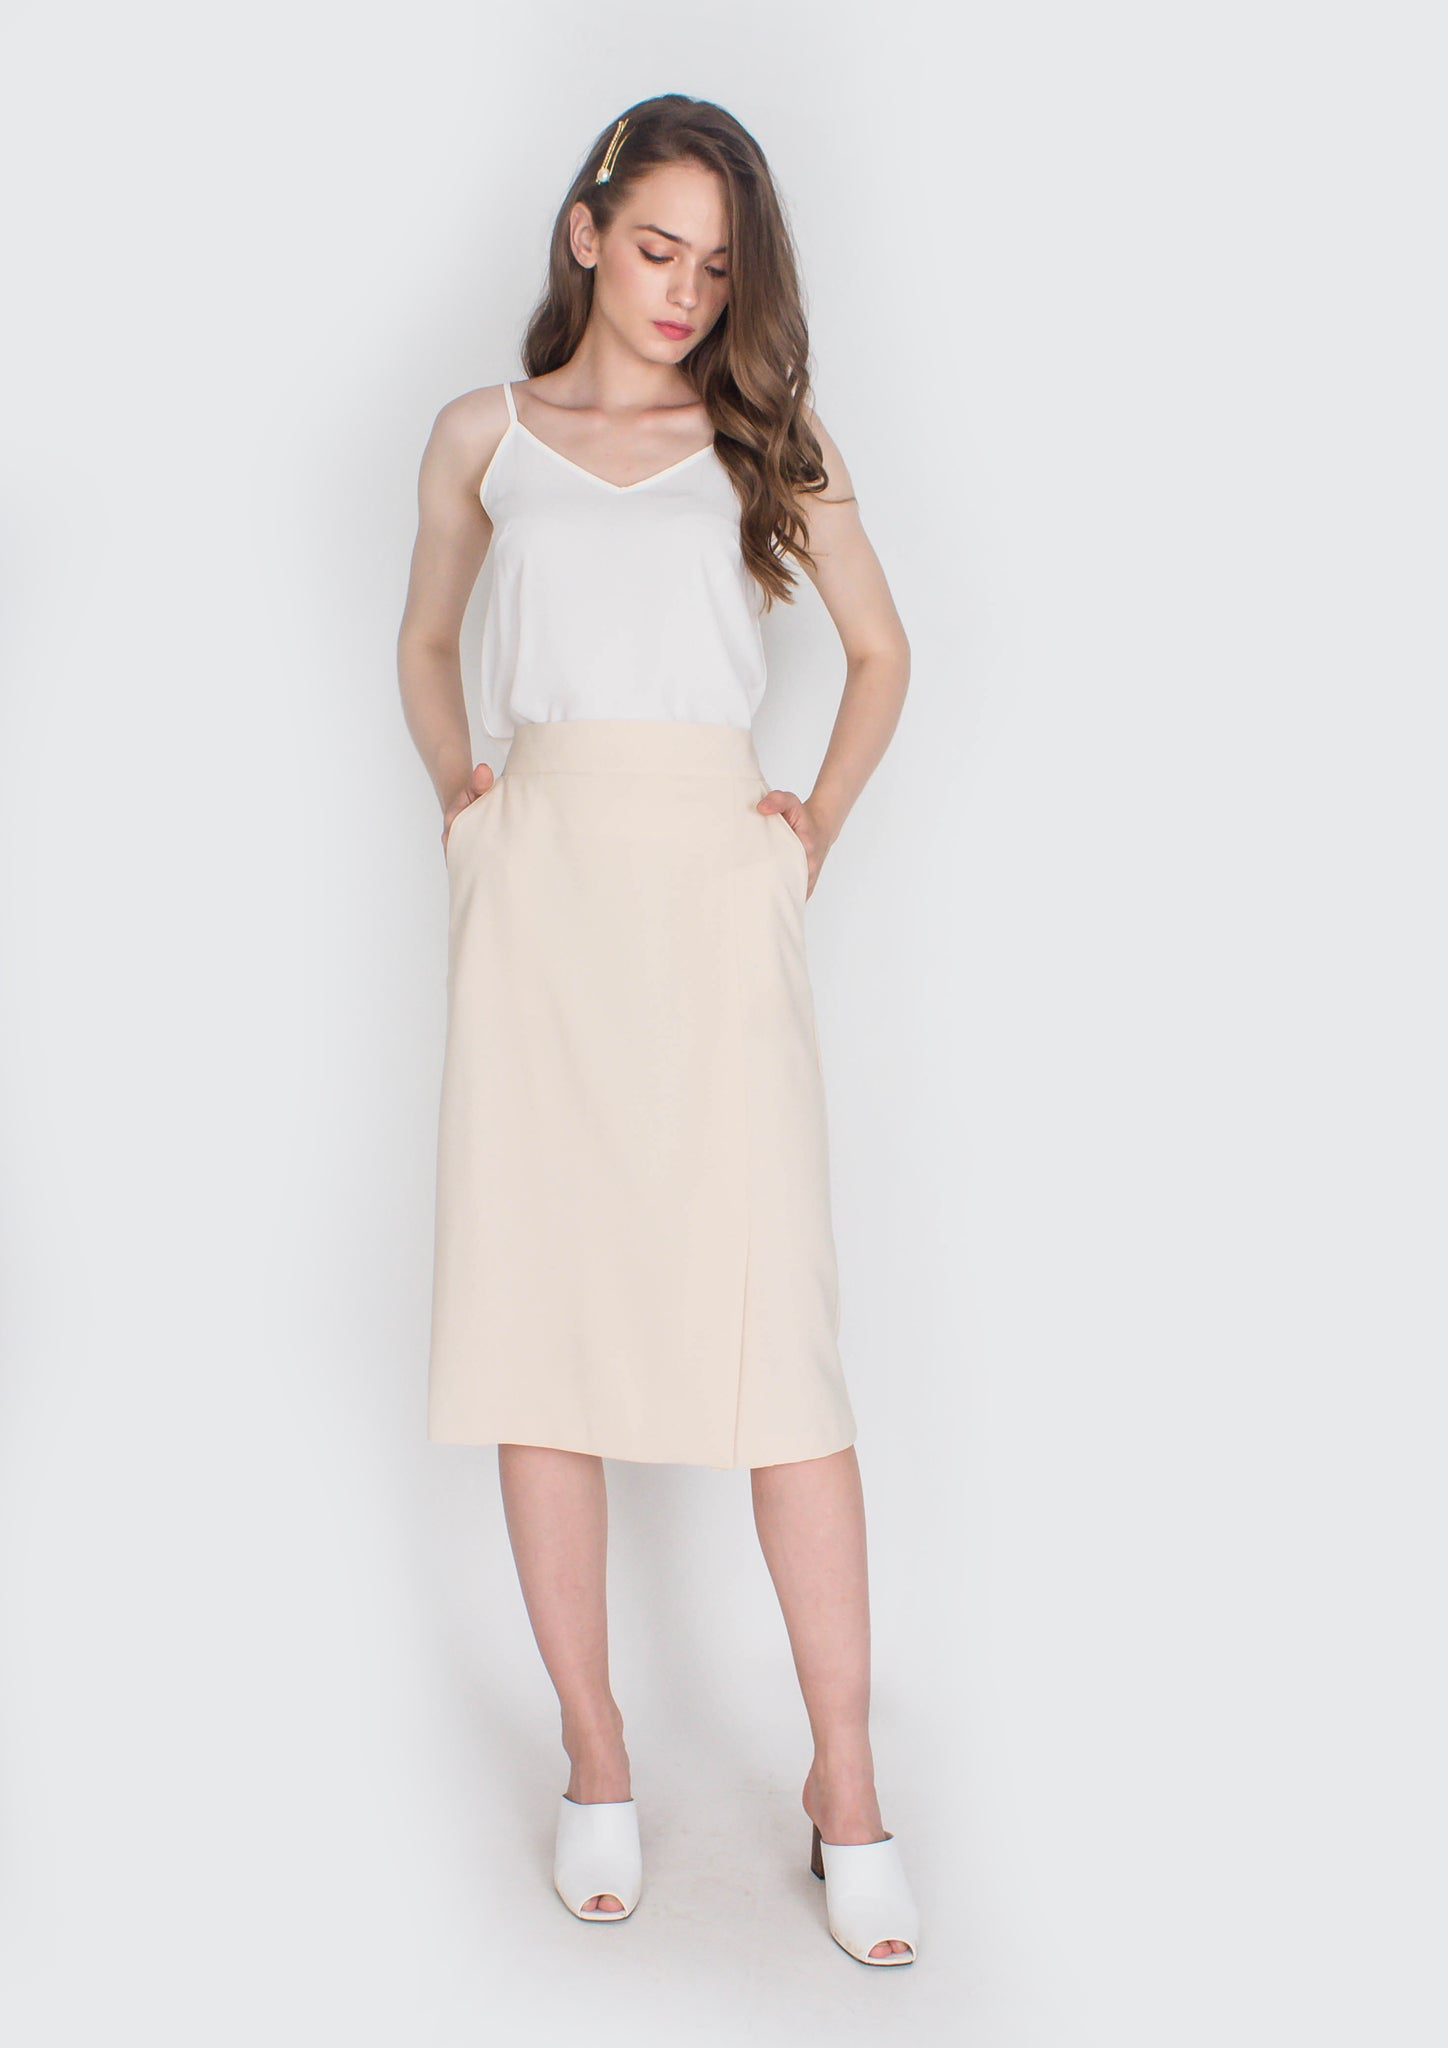 Hepburn Pencil Skirt with Side Slit (Cream) - Moxie